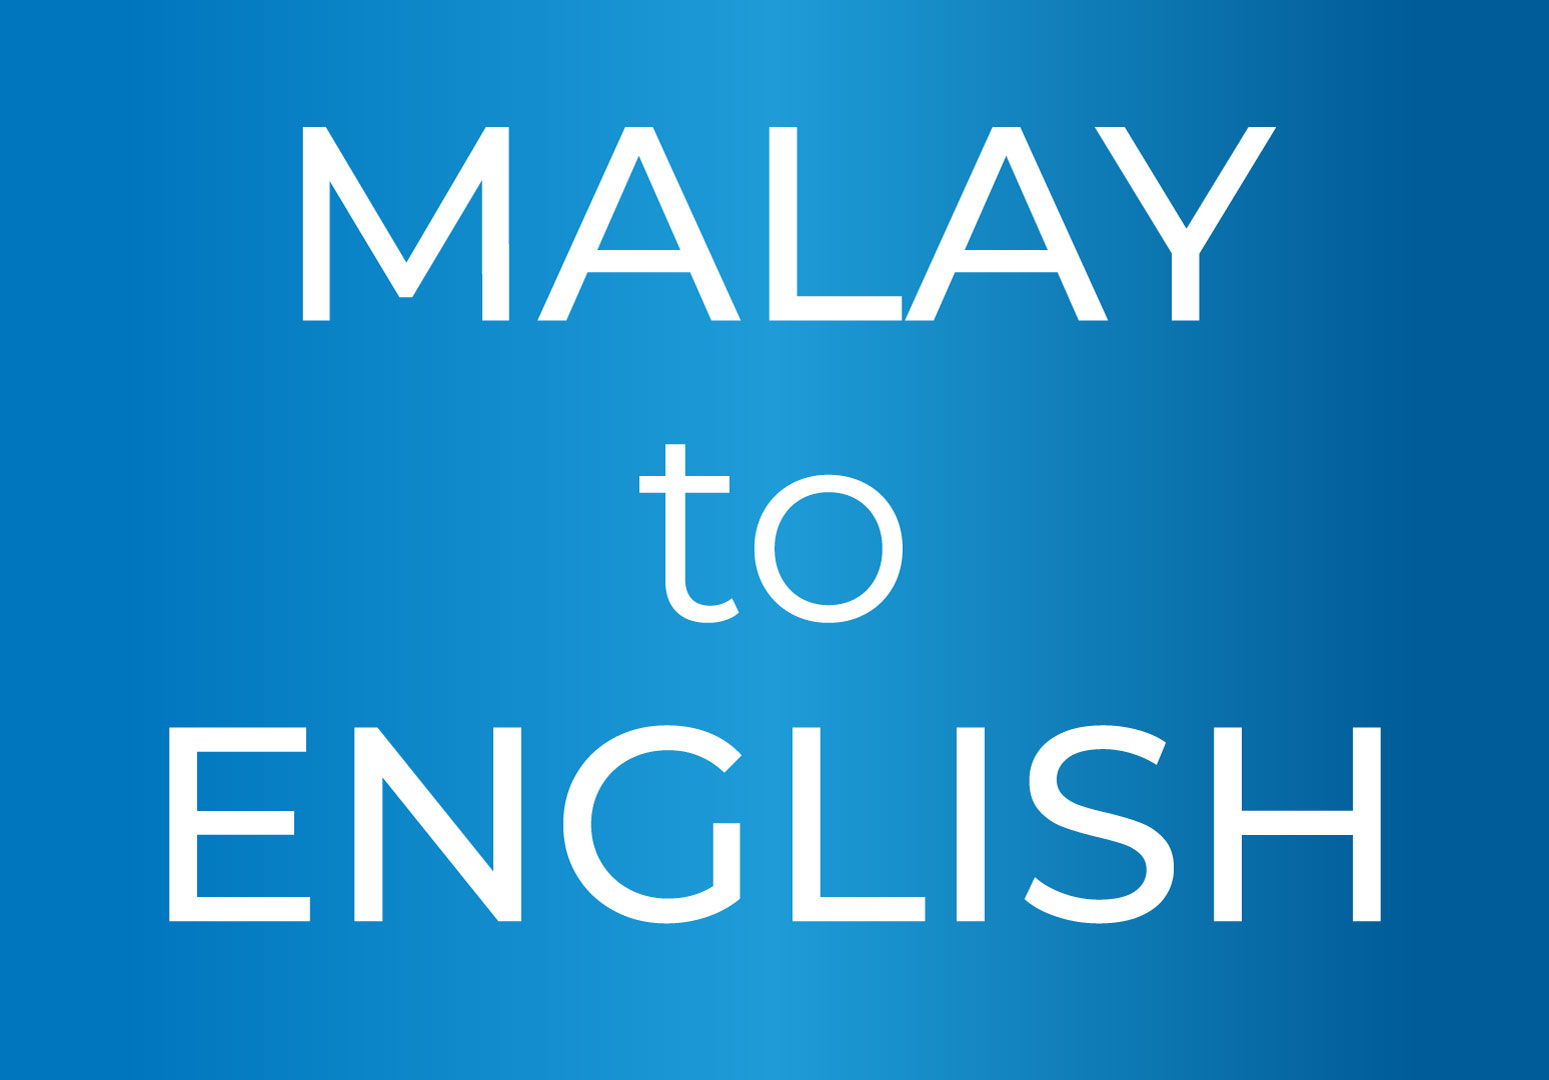 English to Malay translation anything